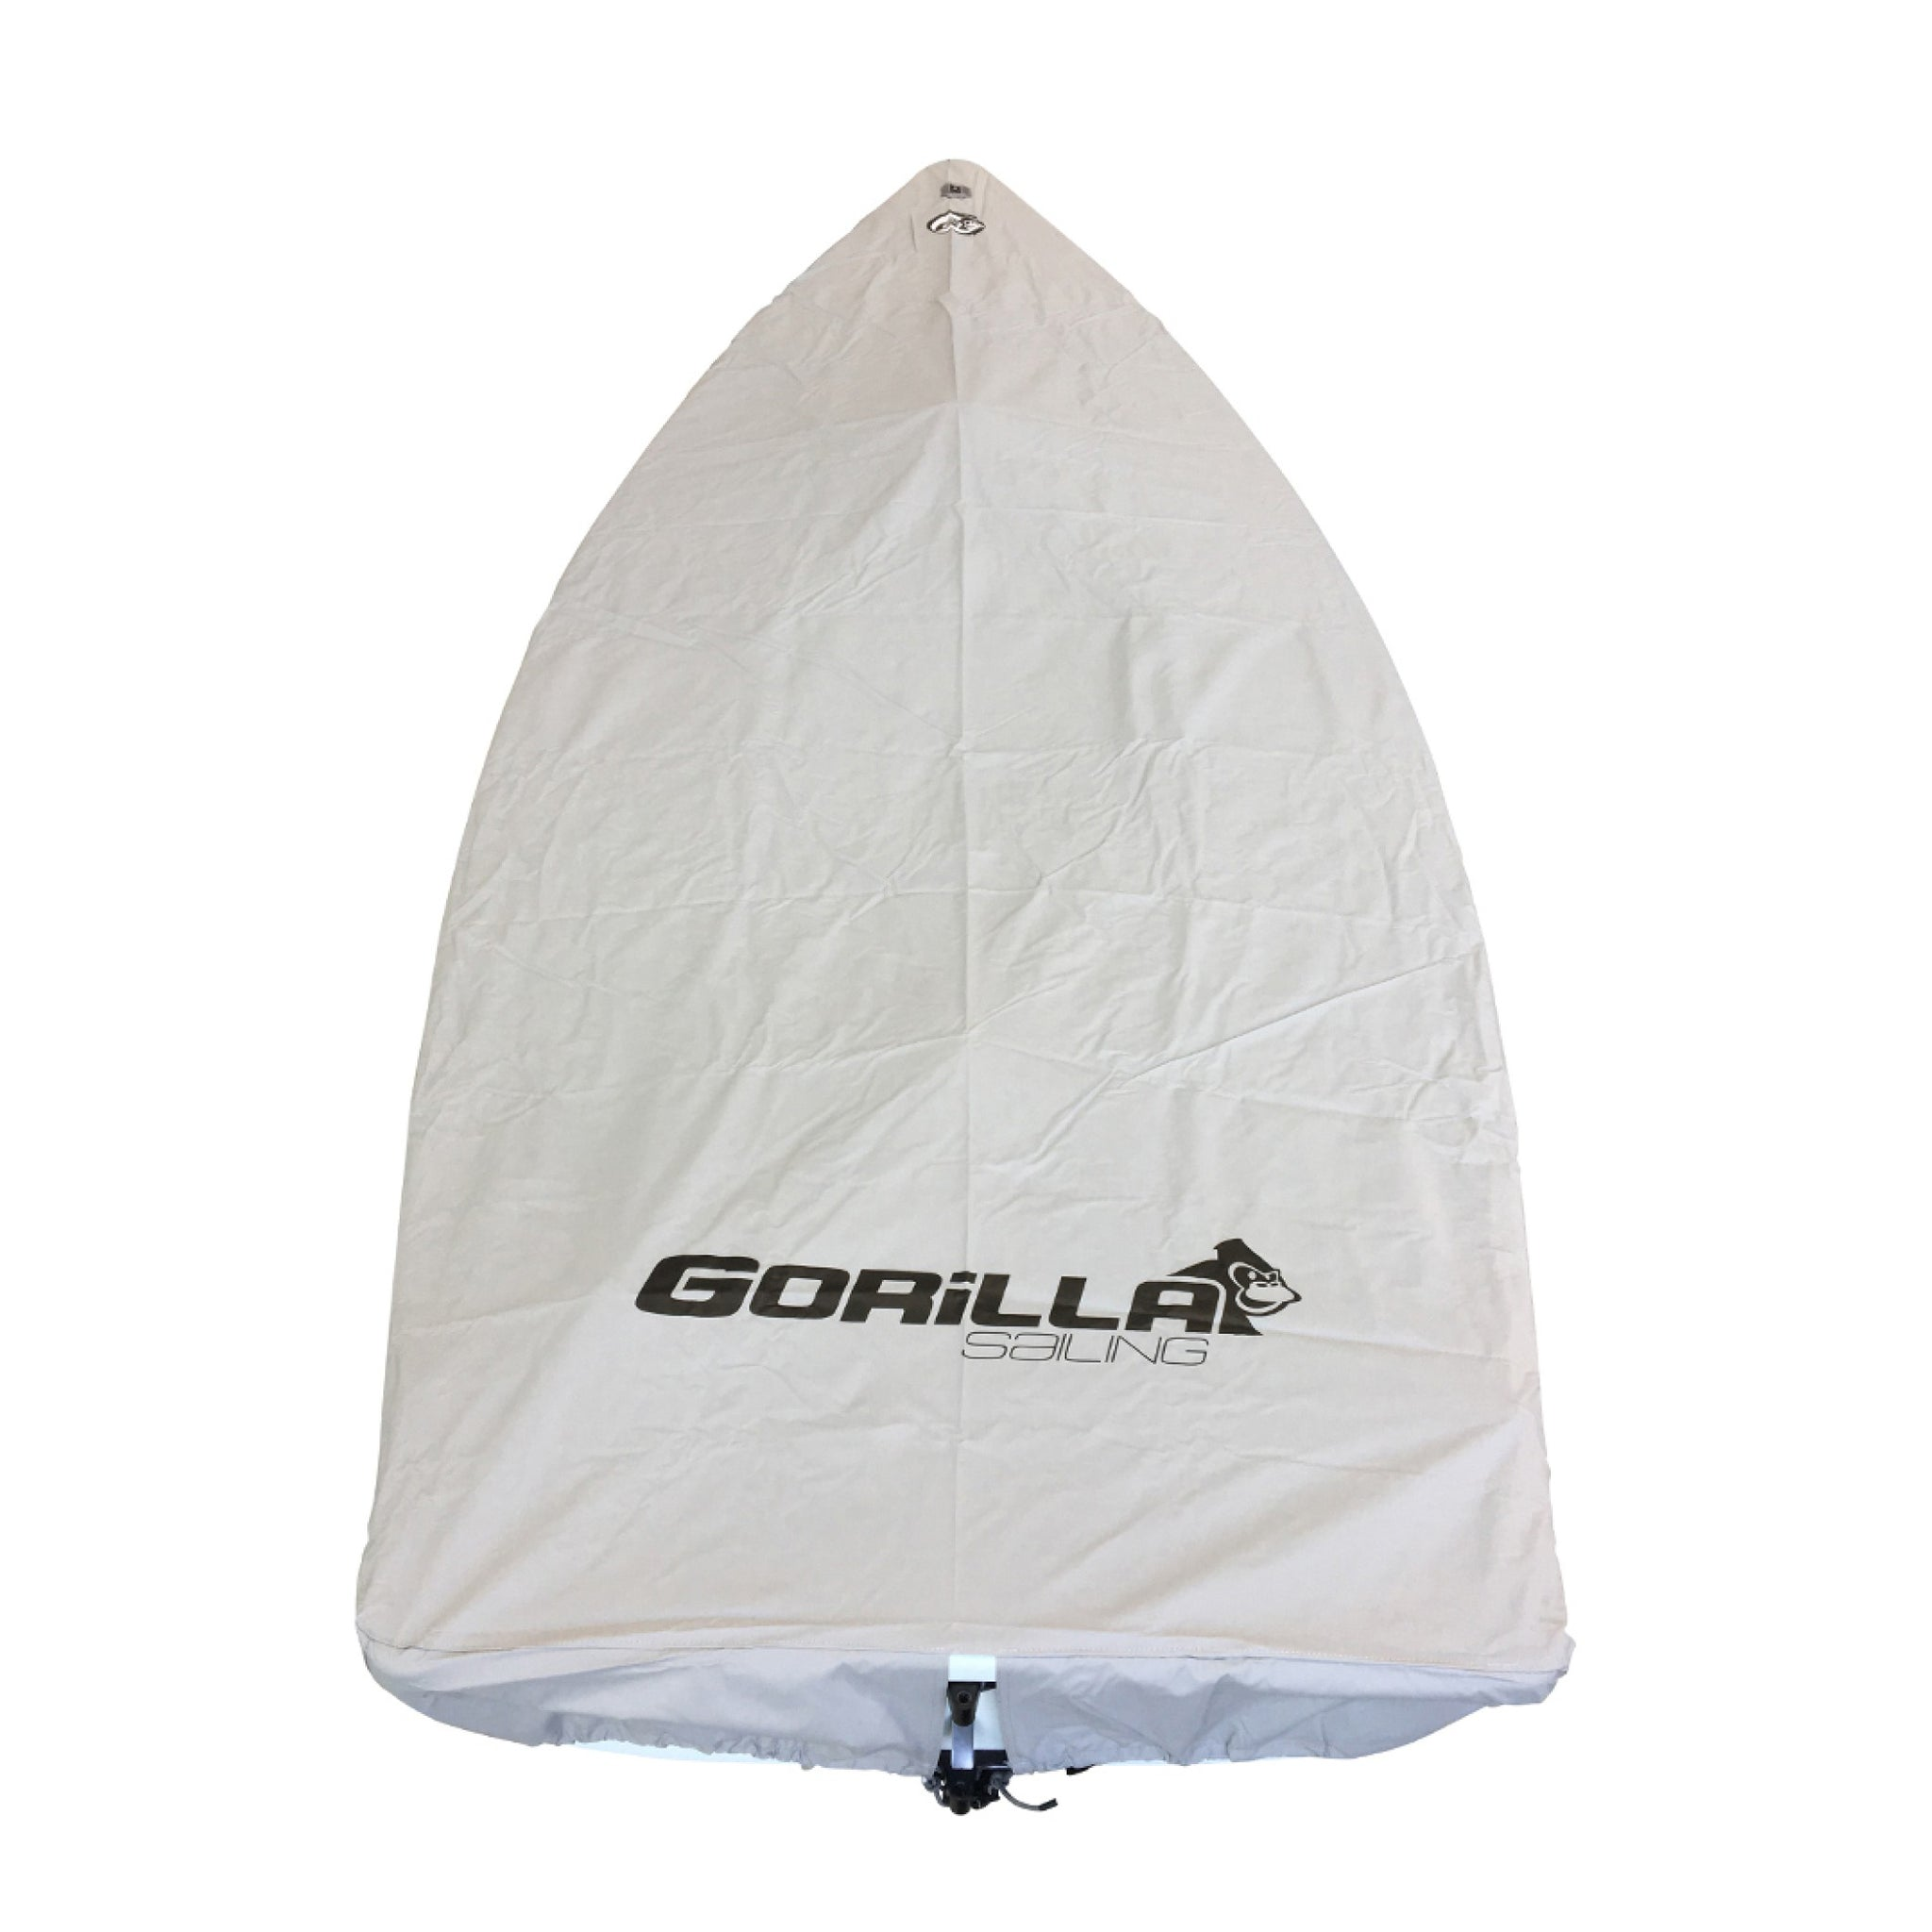 Laser Tufftex Top Cover Gorilla Sailing